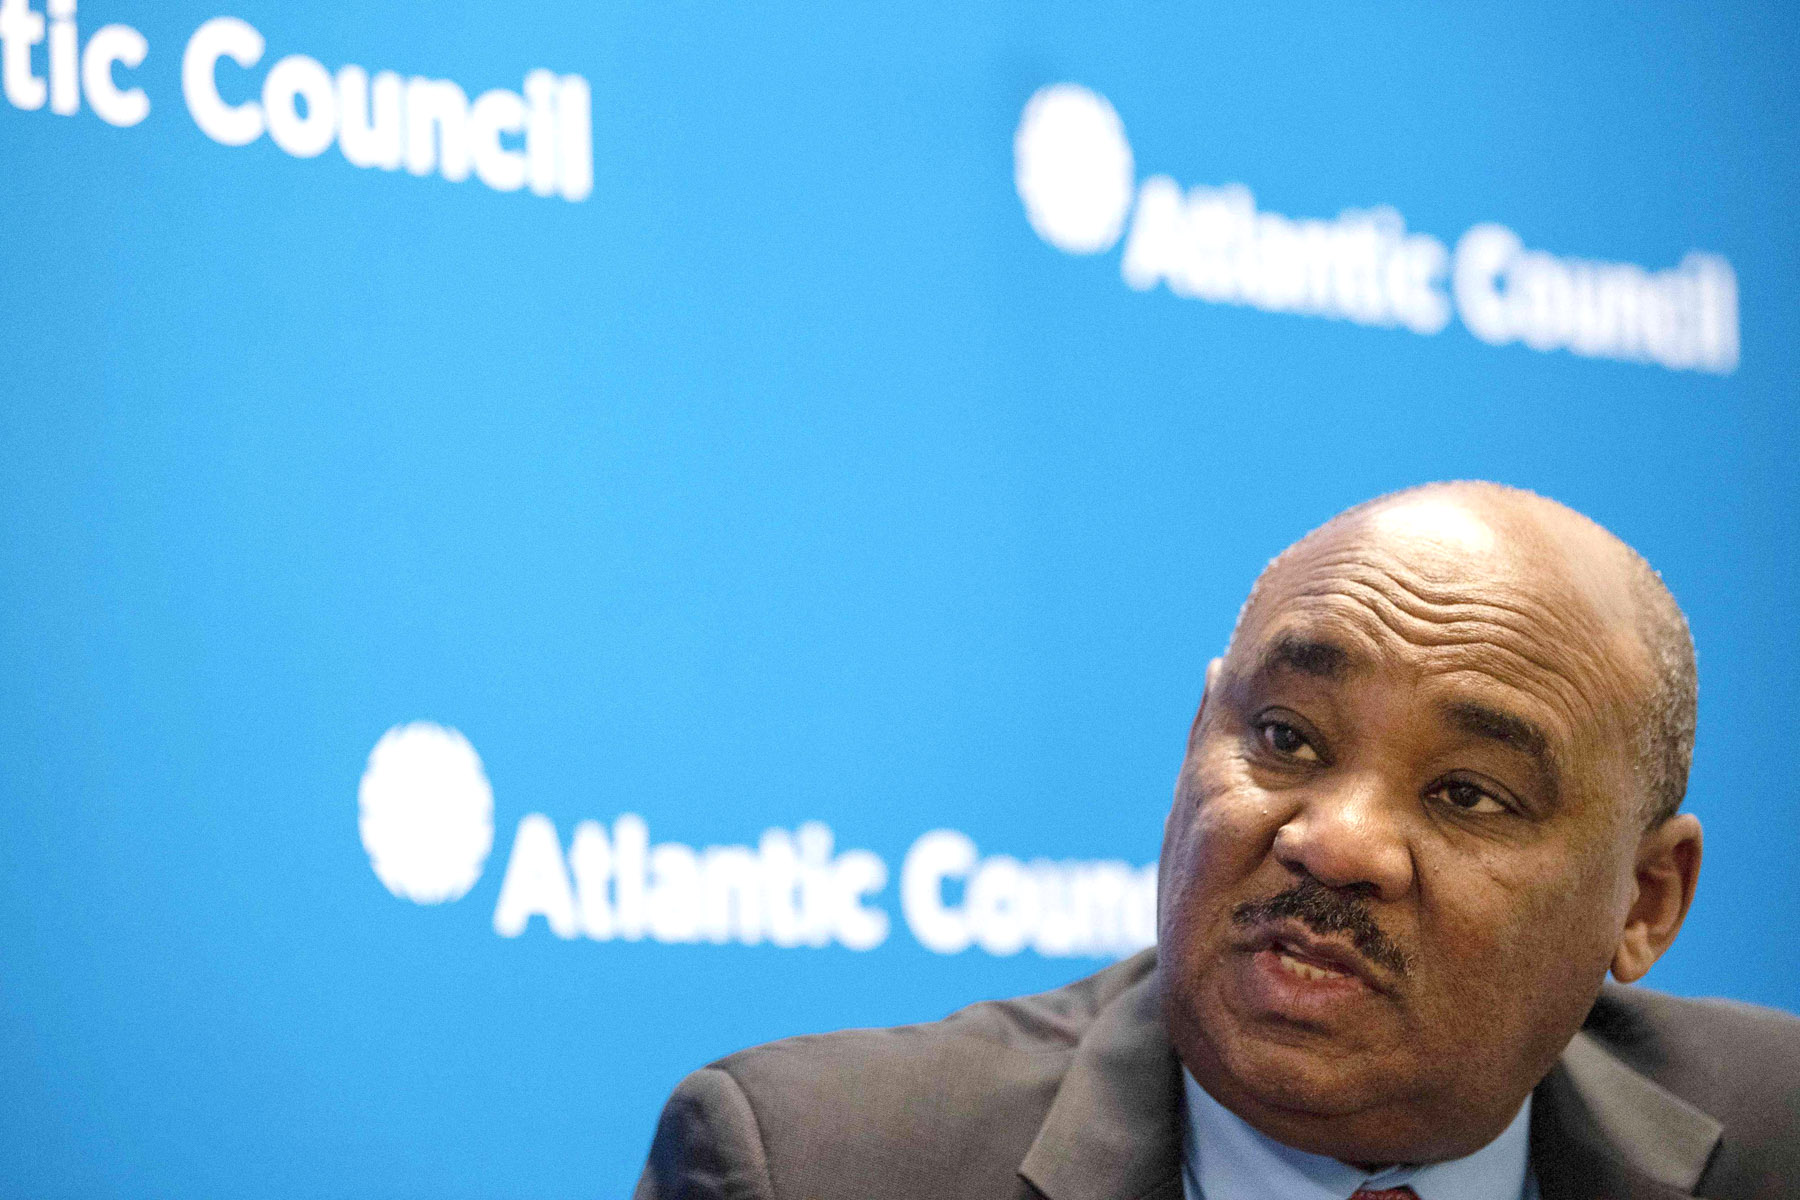 Sudanese Finance Minister Ibrahim al-Badawi speaks during an interview in Washington, October 22. (AFP)